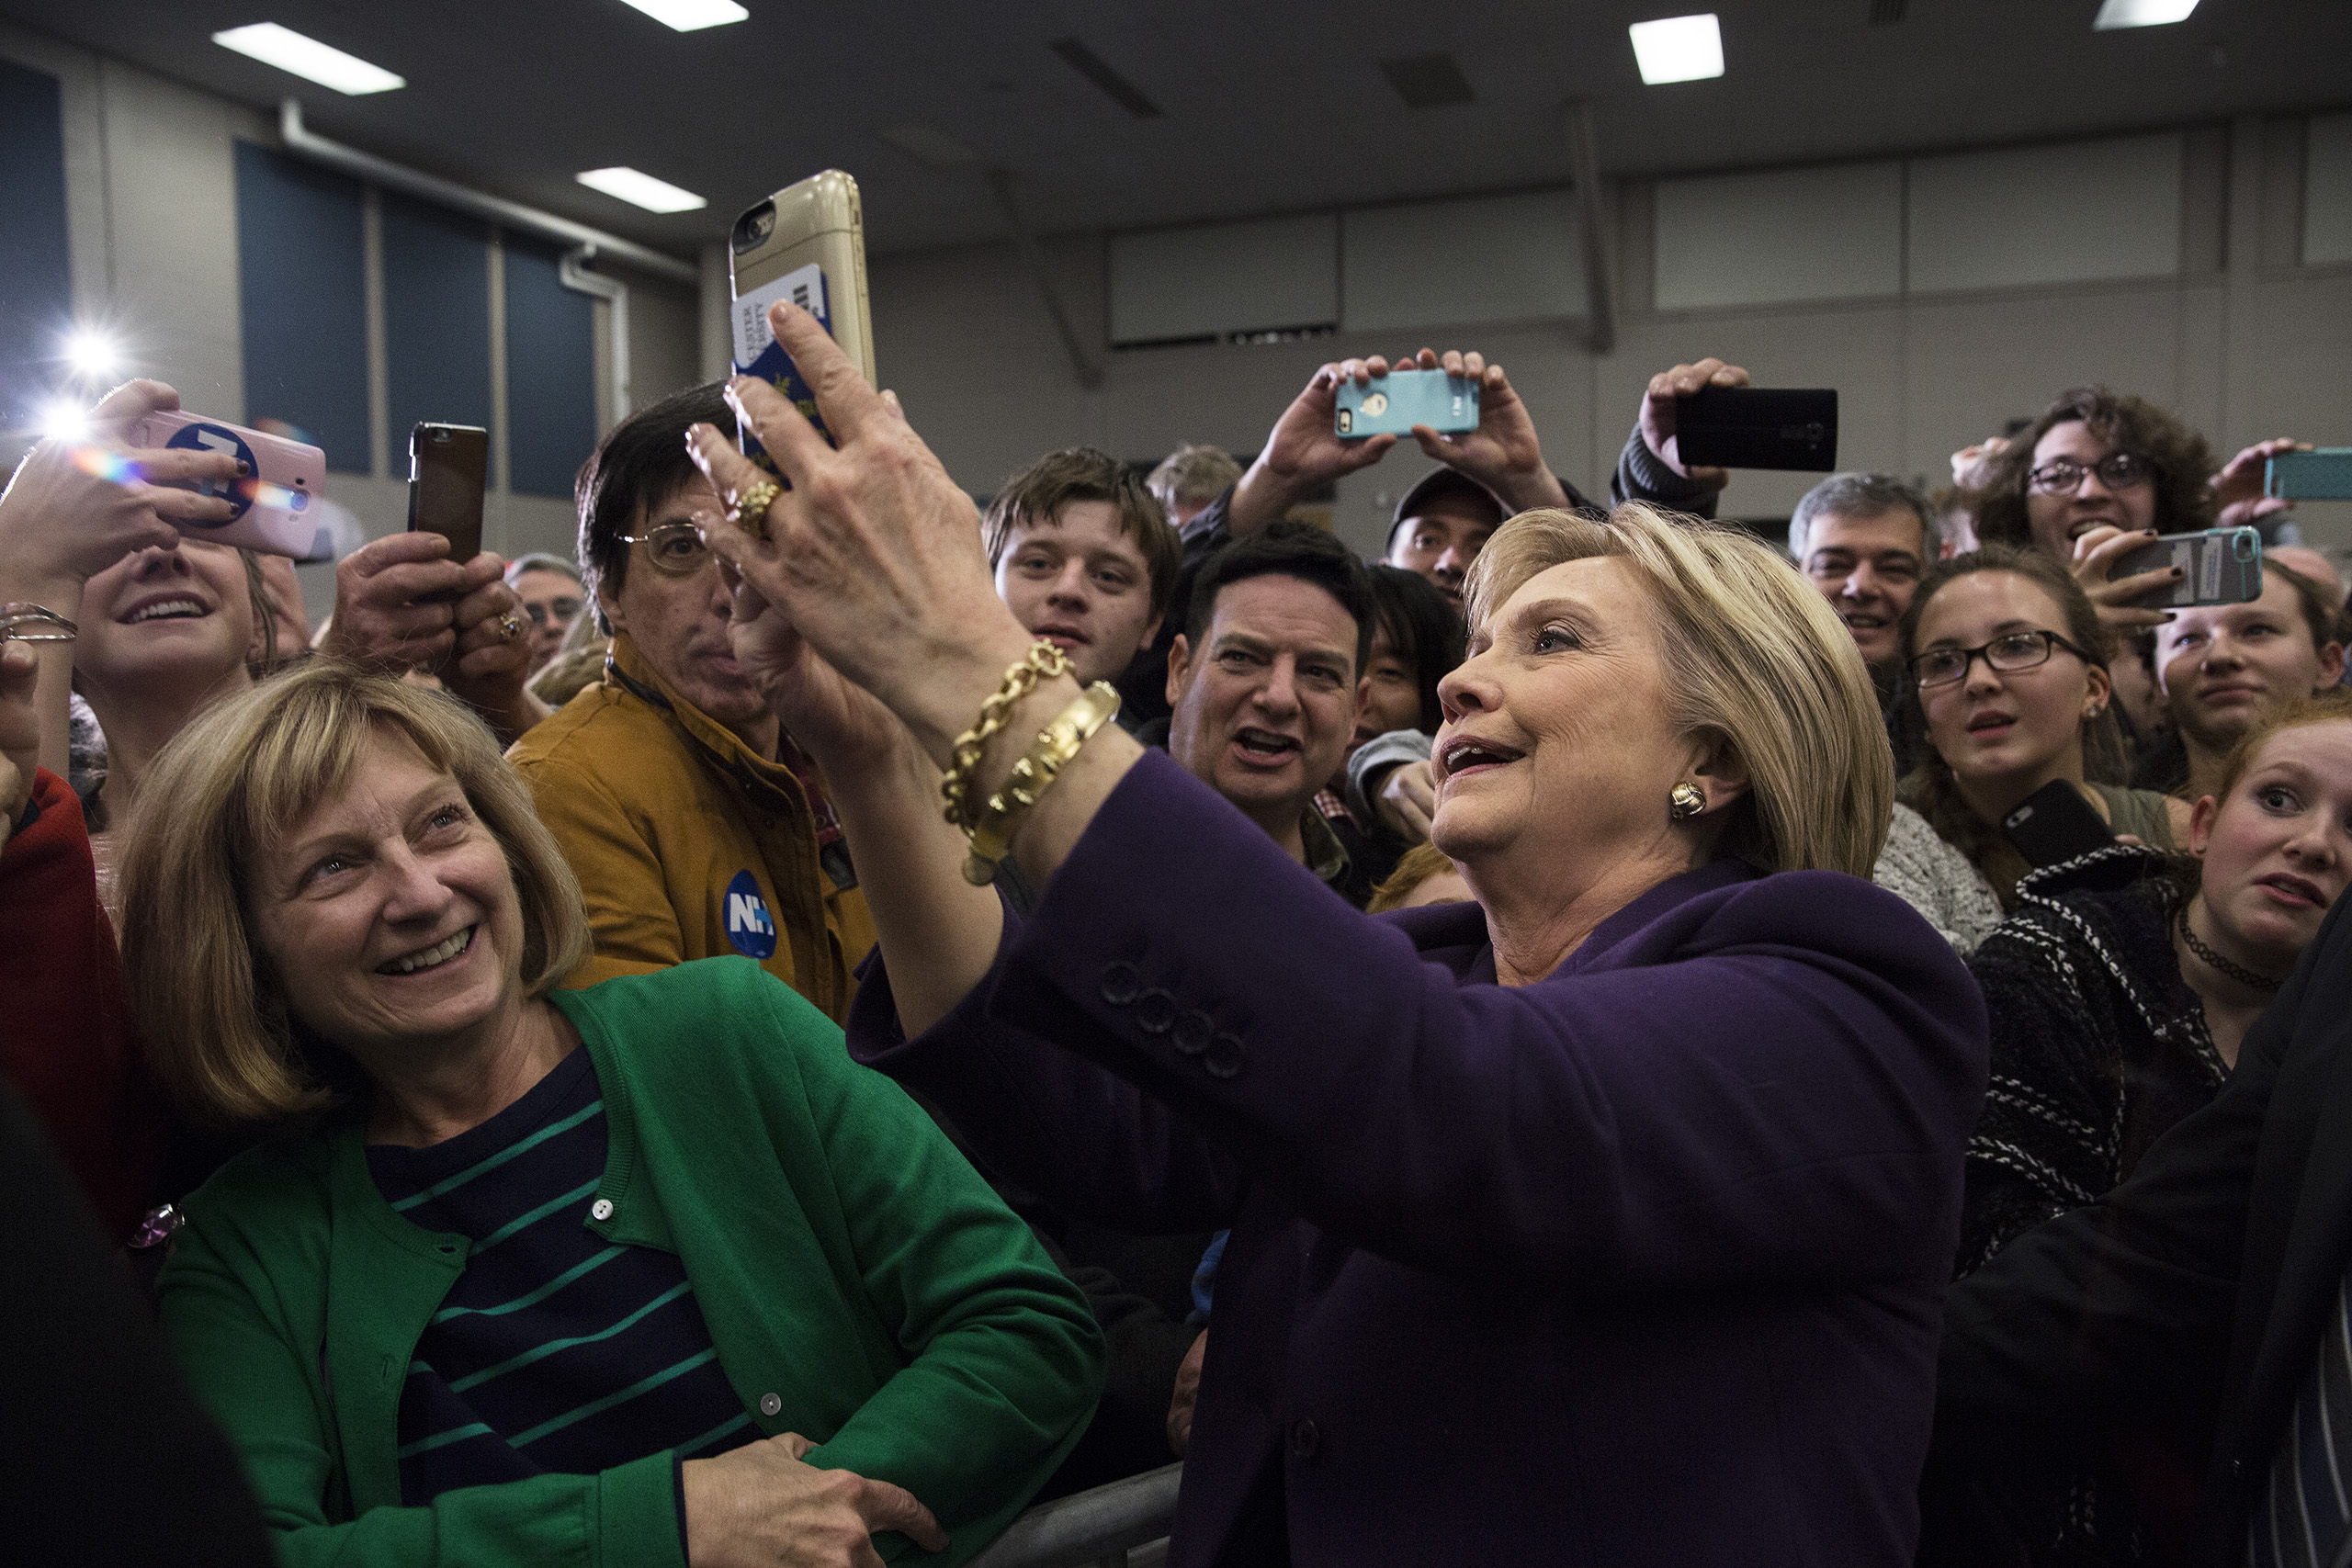 Democratic Presidential candidate Hillary Clinton takes selfies while campaigning at Winnacunnet High School in Hampton, N.H. Feb. 2, 2016.